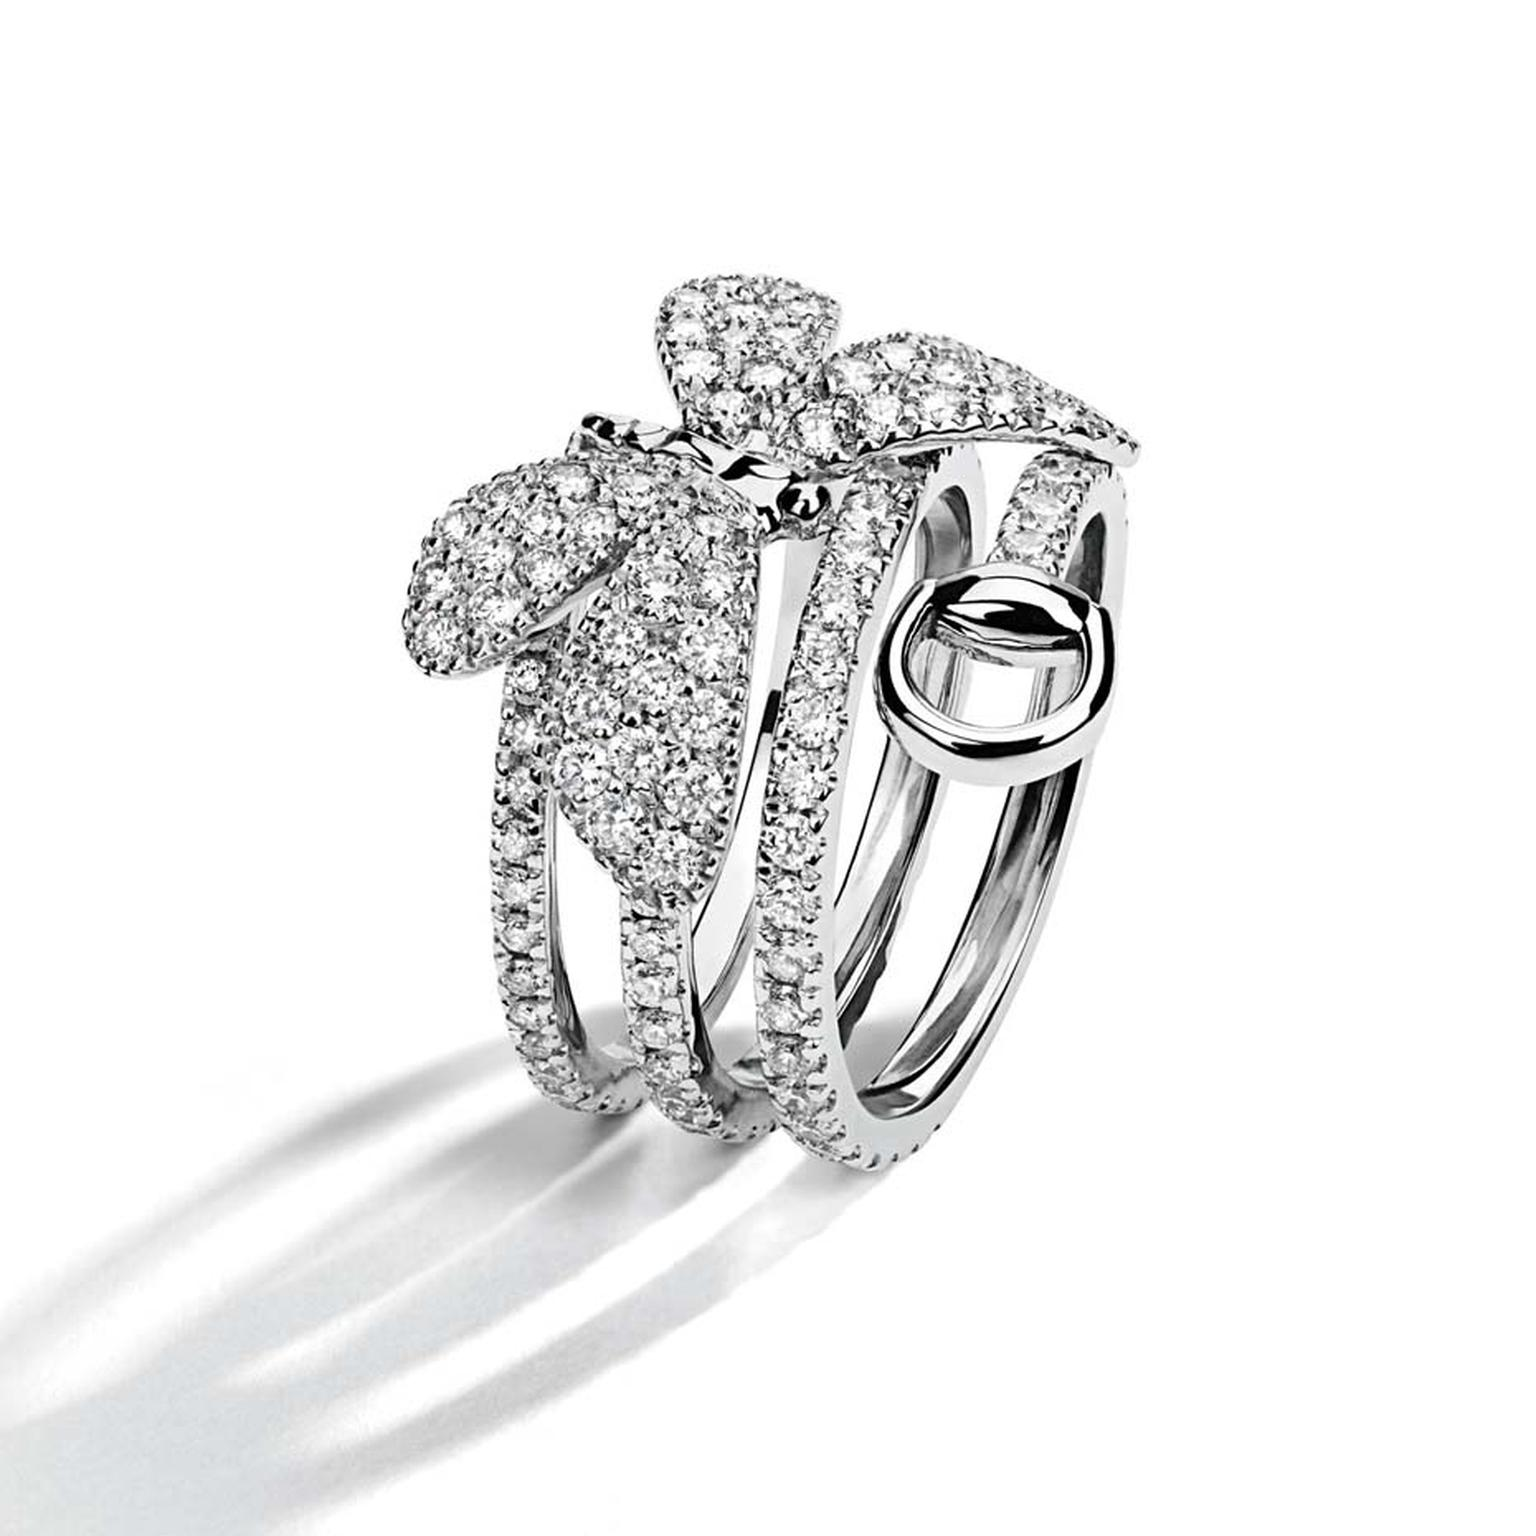 Butterfly jewellery_Basel_Gucci_White gold and diamond Butterfly spiral ring.jpg